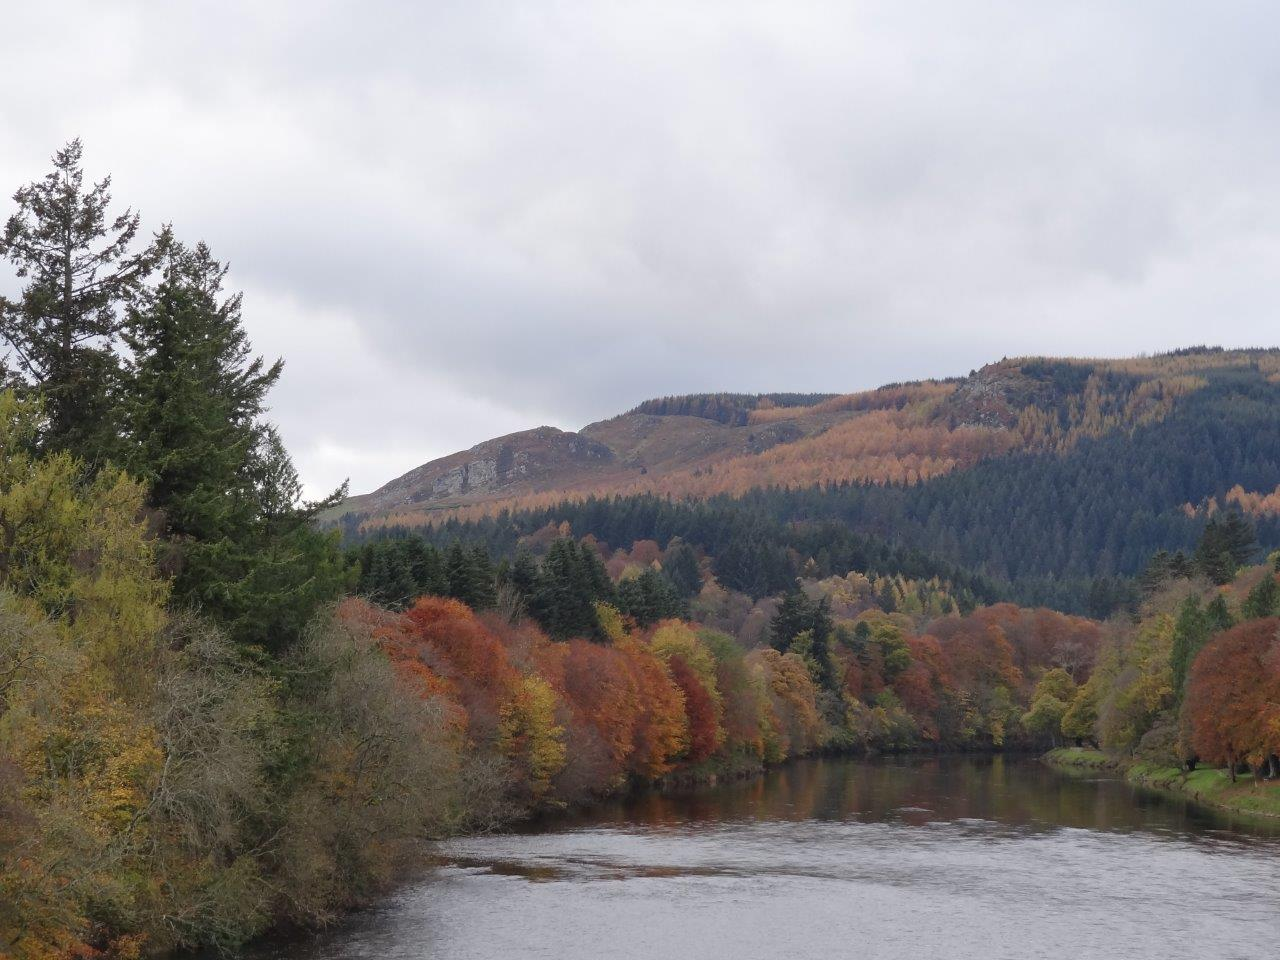 View of autumnal trees on banks of the River Tay